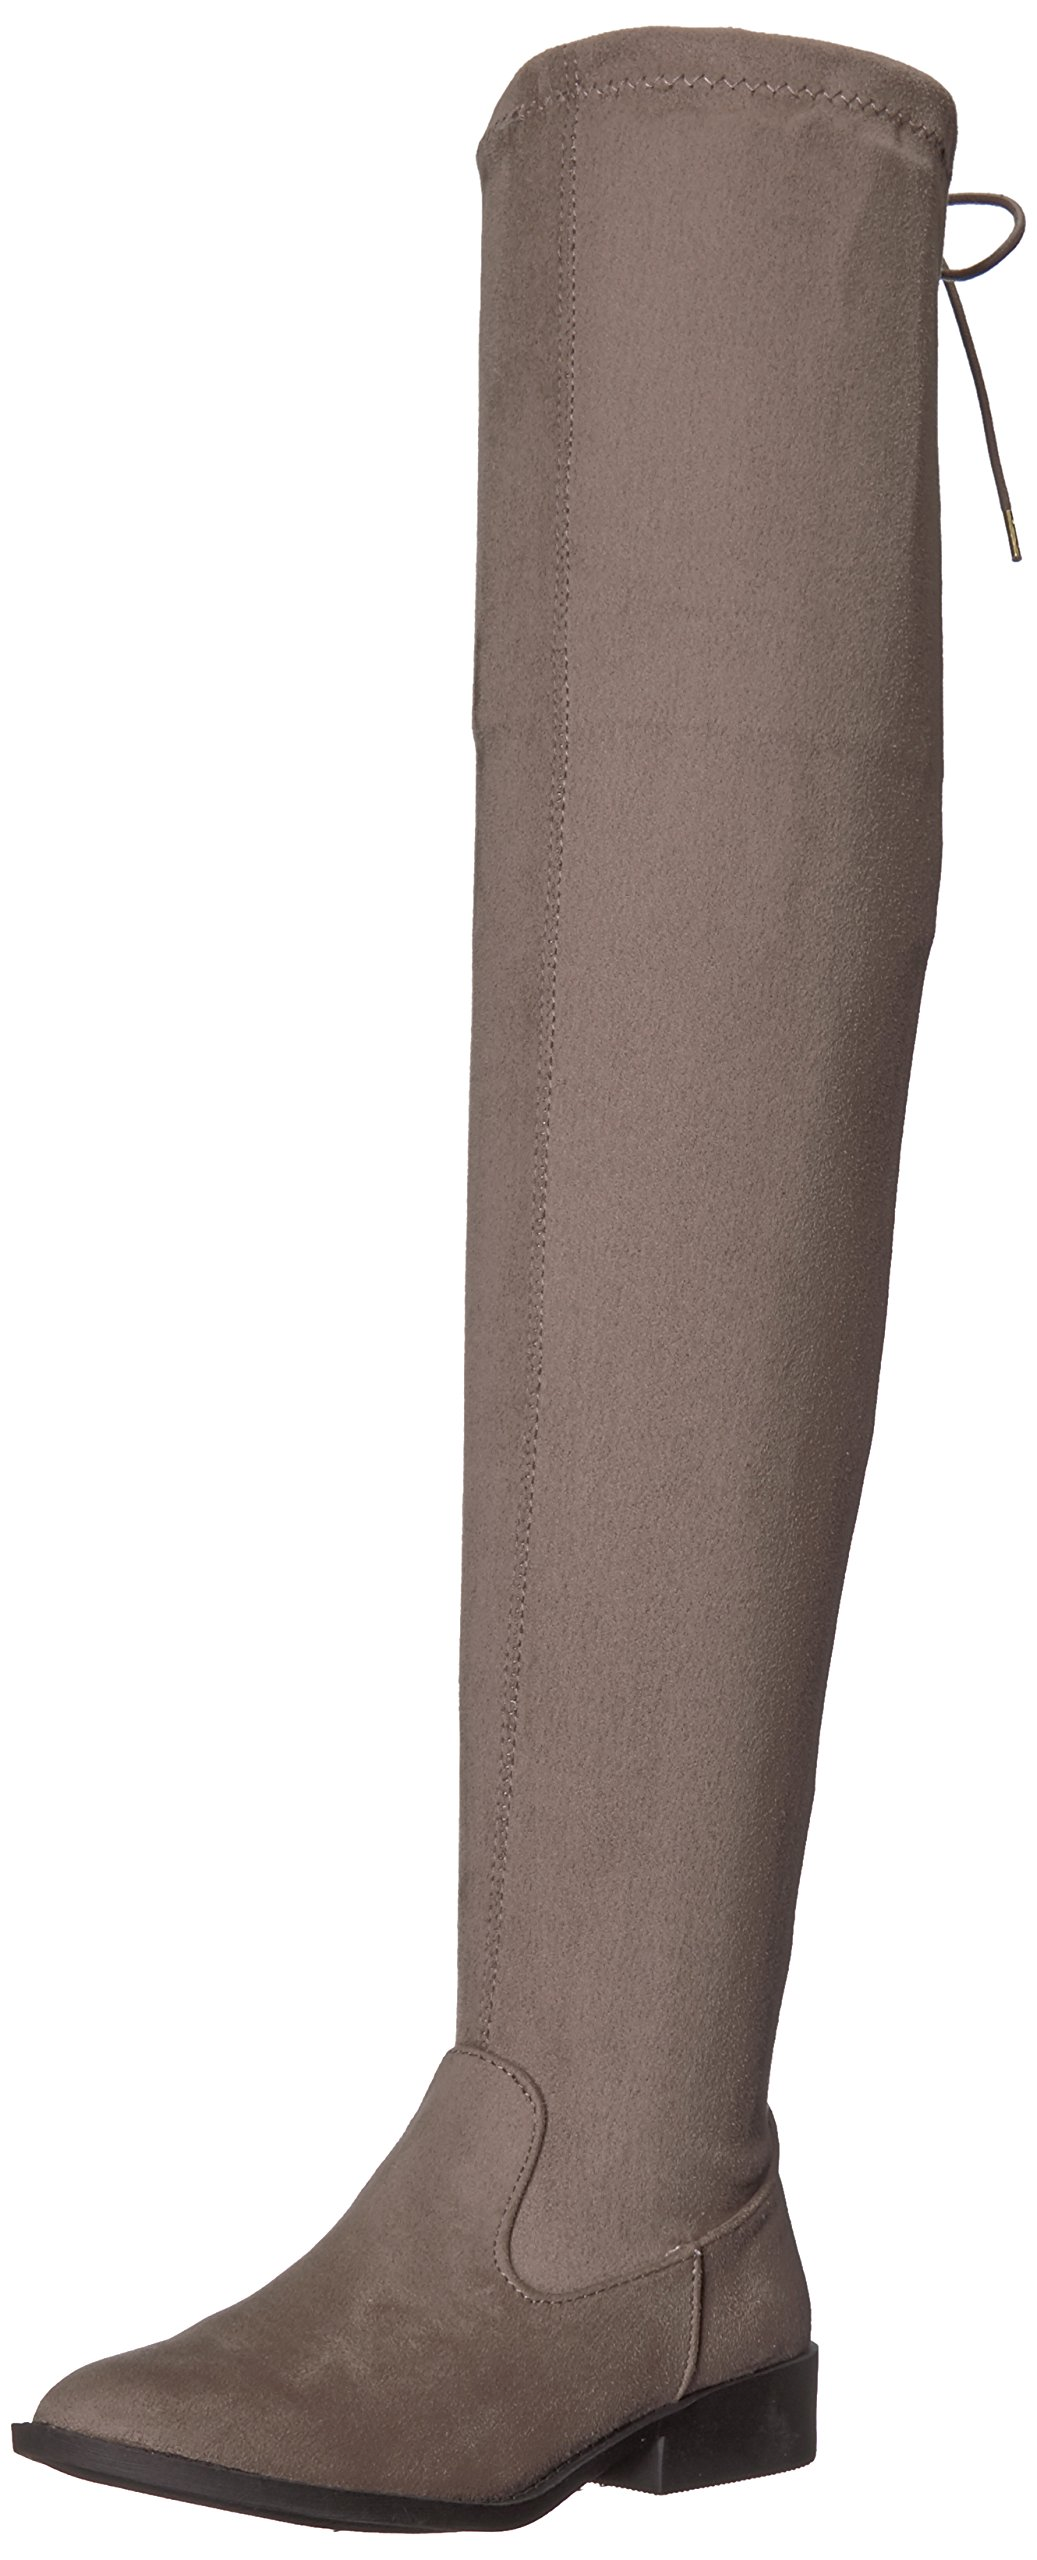 Qupid Women's Vinci-49XX Over The Knee Boot, Taupe, 7.5 M US